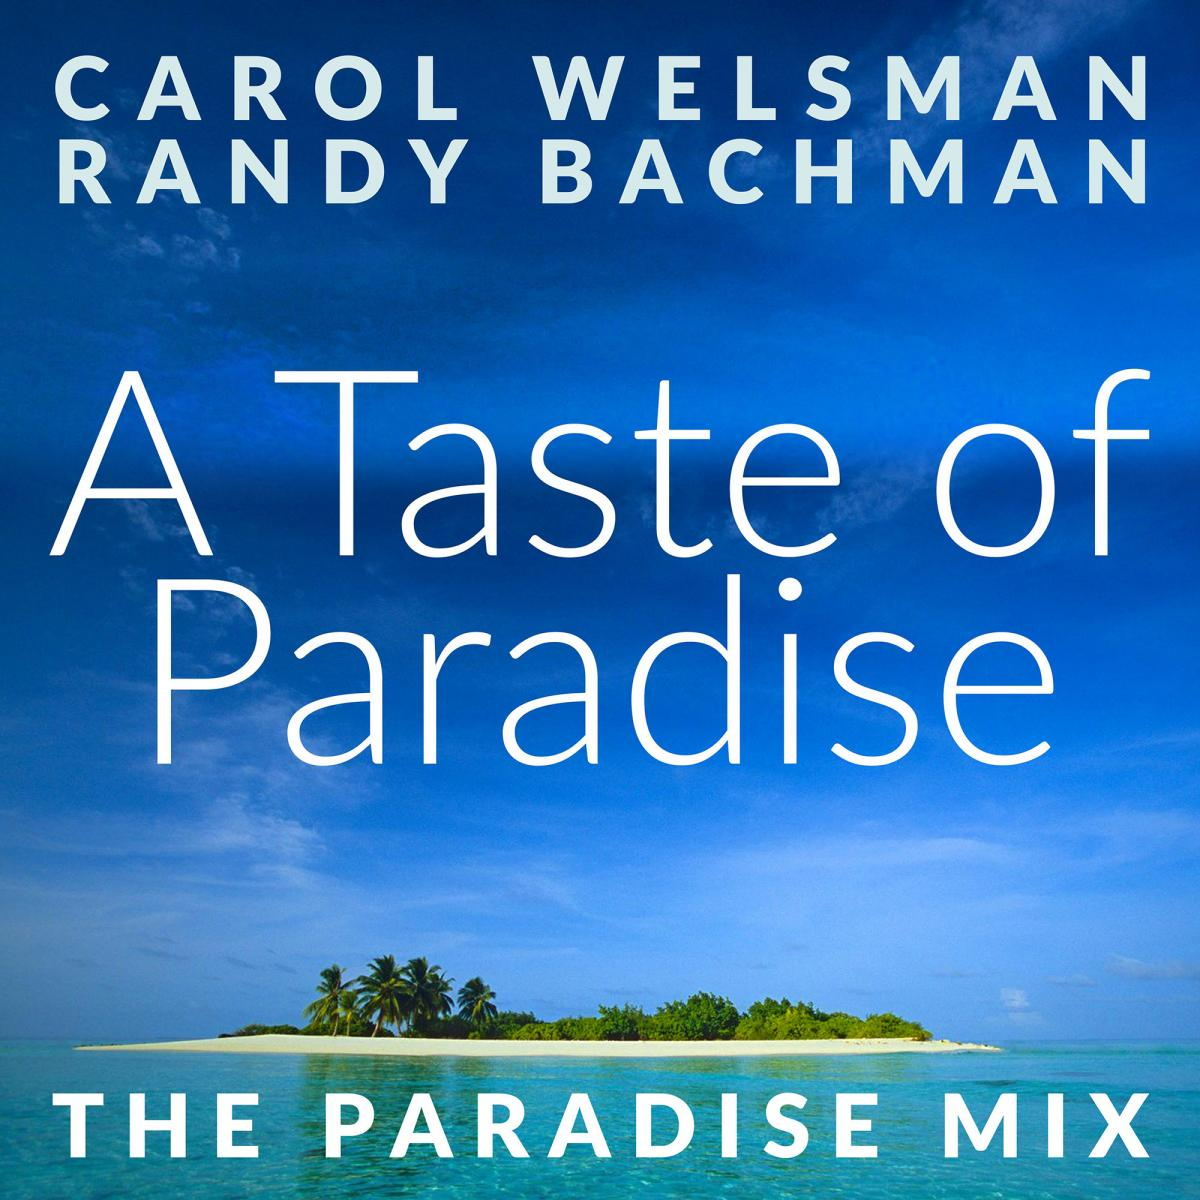 A Taste of Paradise - Carol Welsman and Randy Backman